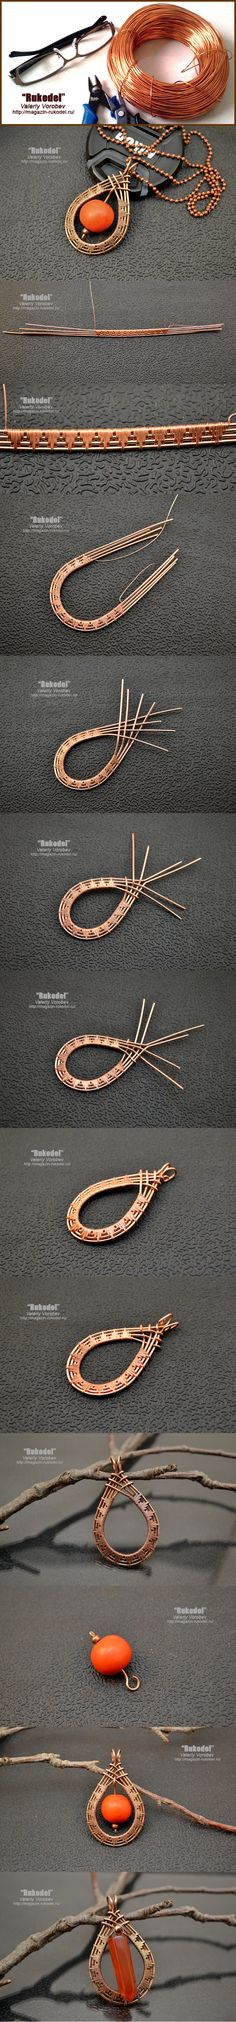 Wire Wrap Tutorial - http://magazin-rukodel.ru/